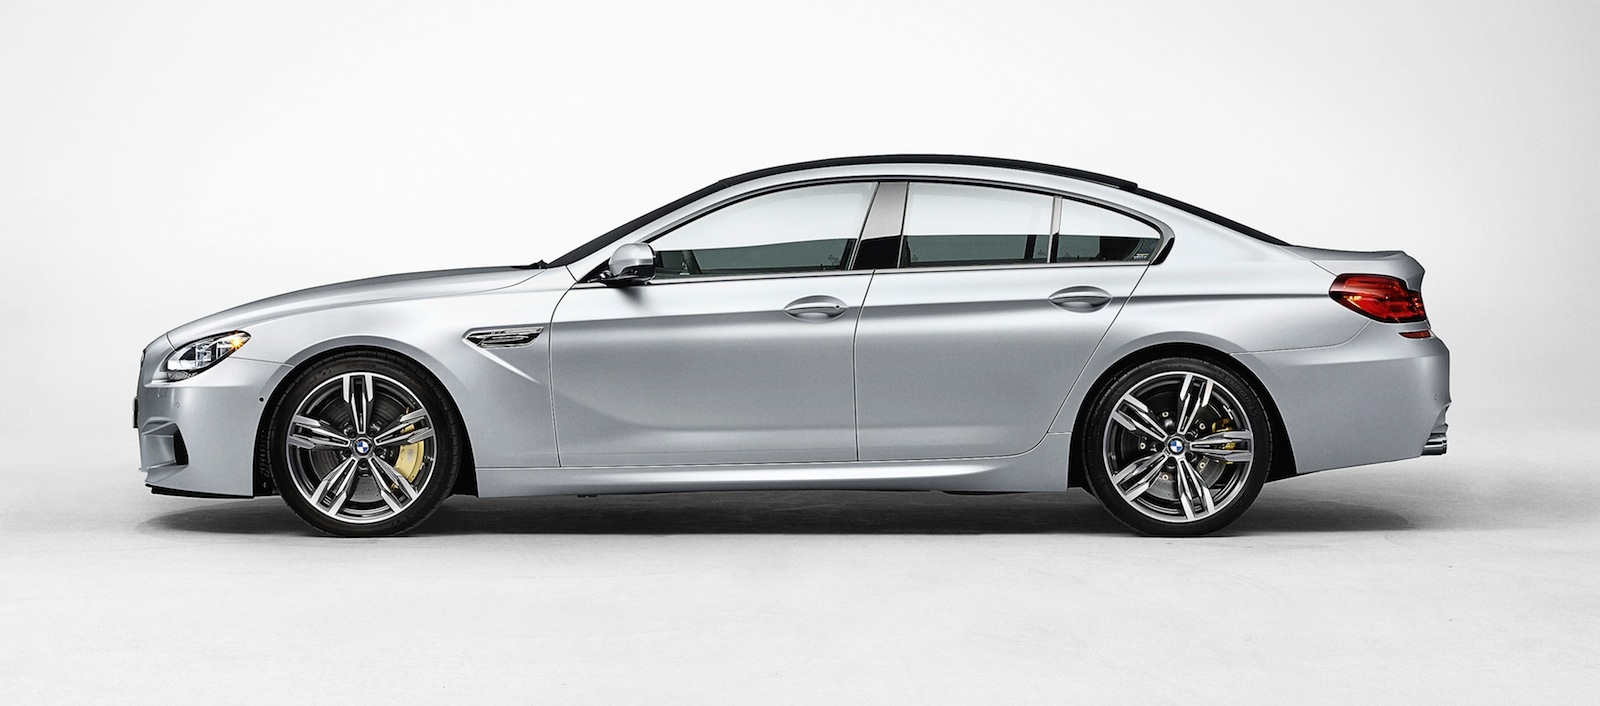 Sport Series bmw m6 gran coupe BMW M6 Gran Coupe: local pricing announced - Photos